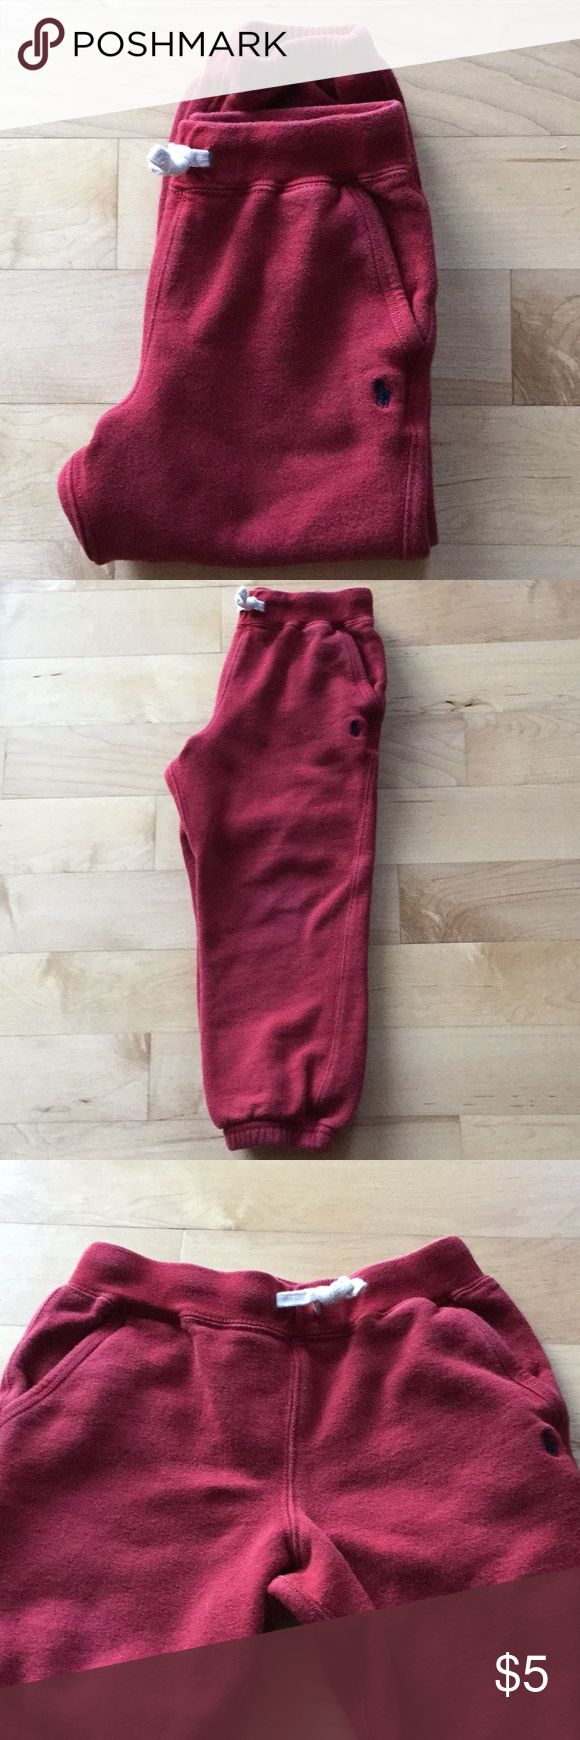 Boys Polo Sweatpants Good condition.  84% cotton and 16% polyester.  Full drawstring and two side pockets. Polo by Ralph Lauren Bottoms Casual